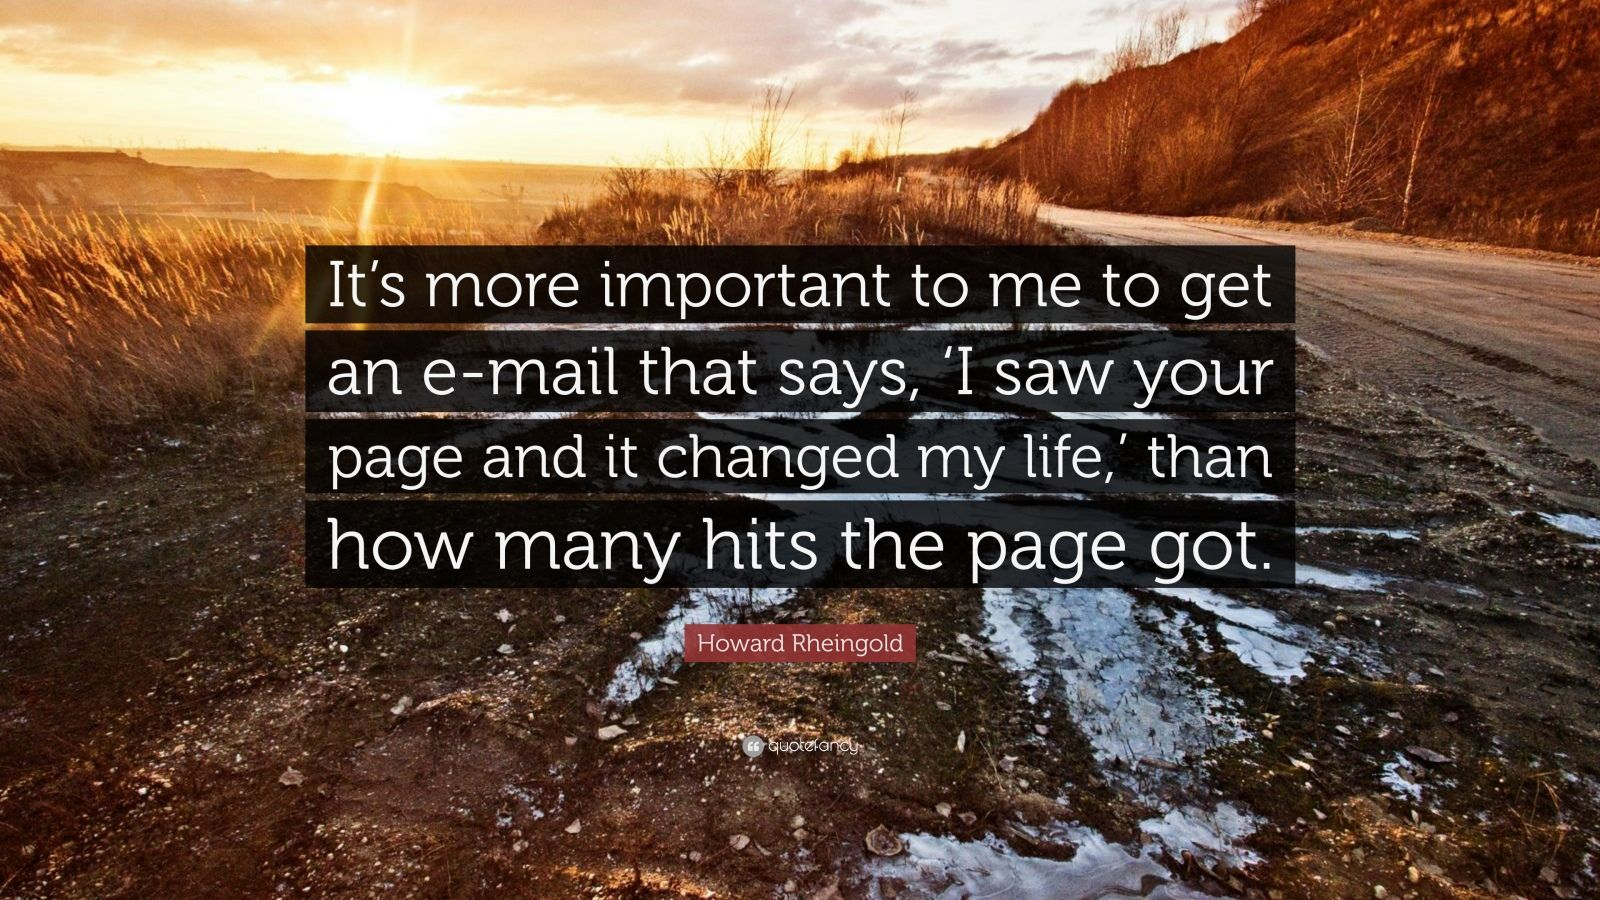 "Howard Rheingold Quote: ""It's more important to me to get an e-mail that says, 'I saw your page and it changed my life,' than how many hits the page got."""